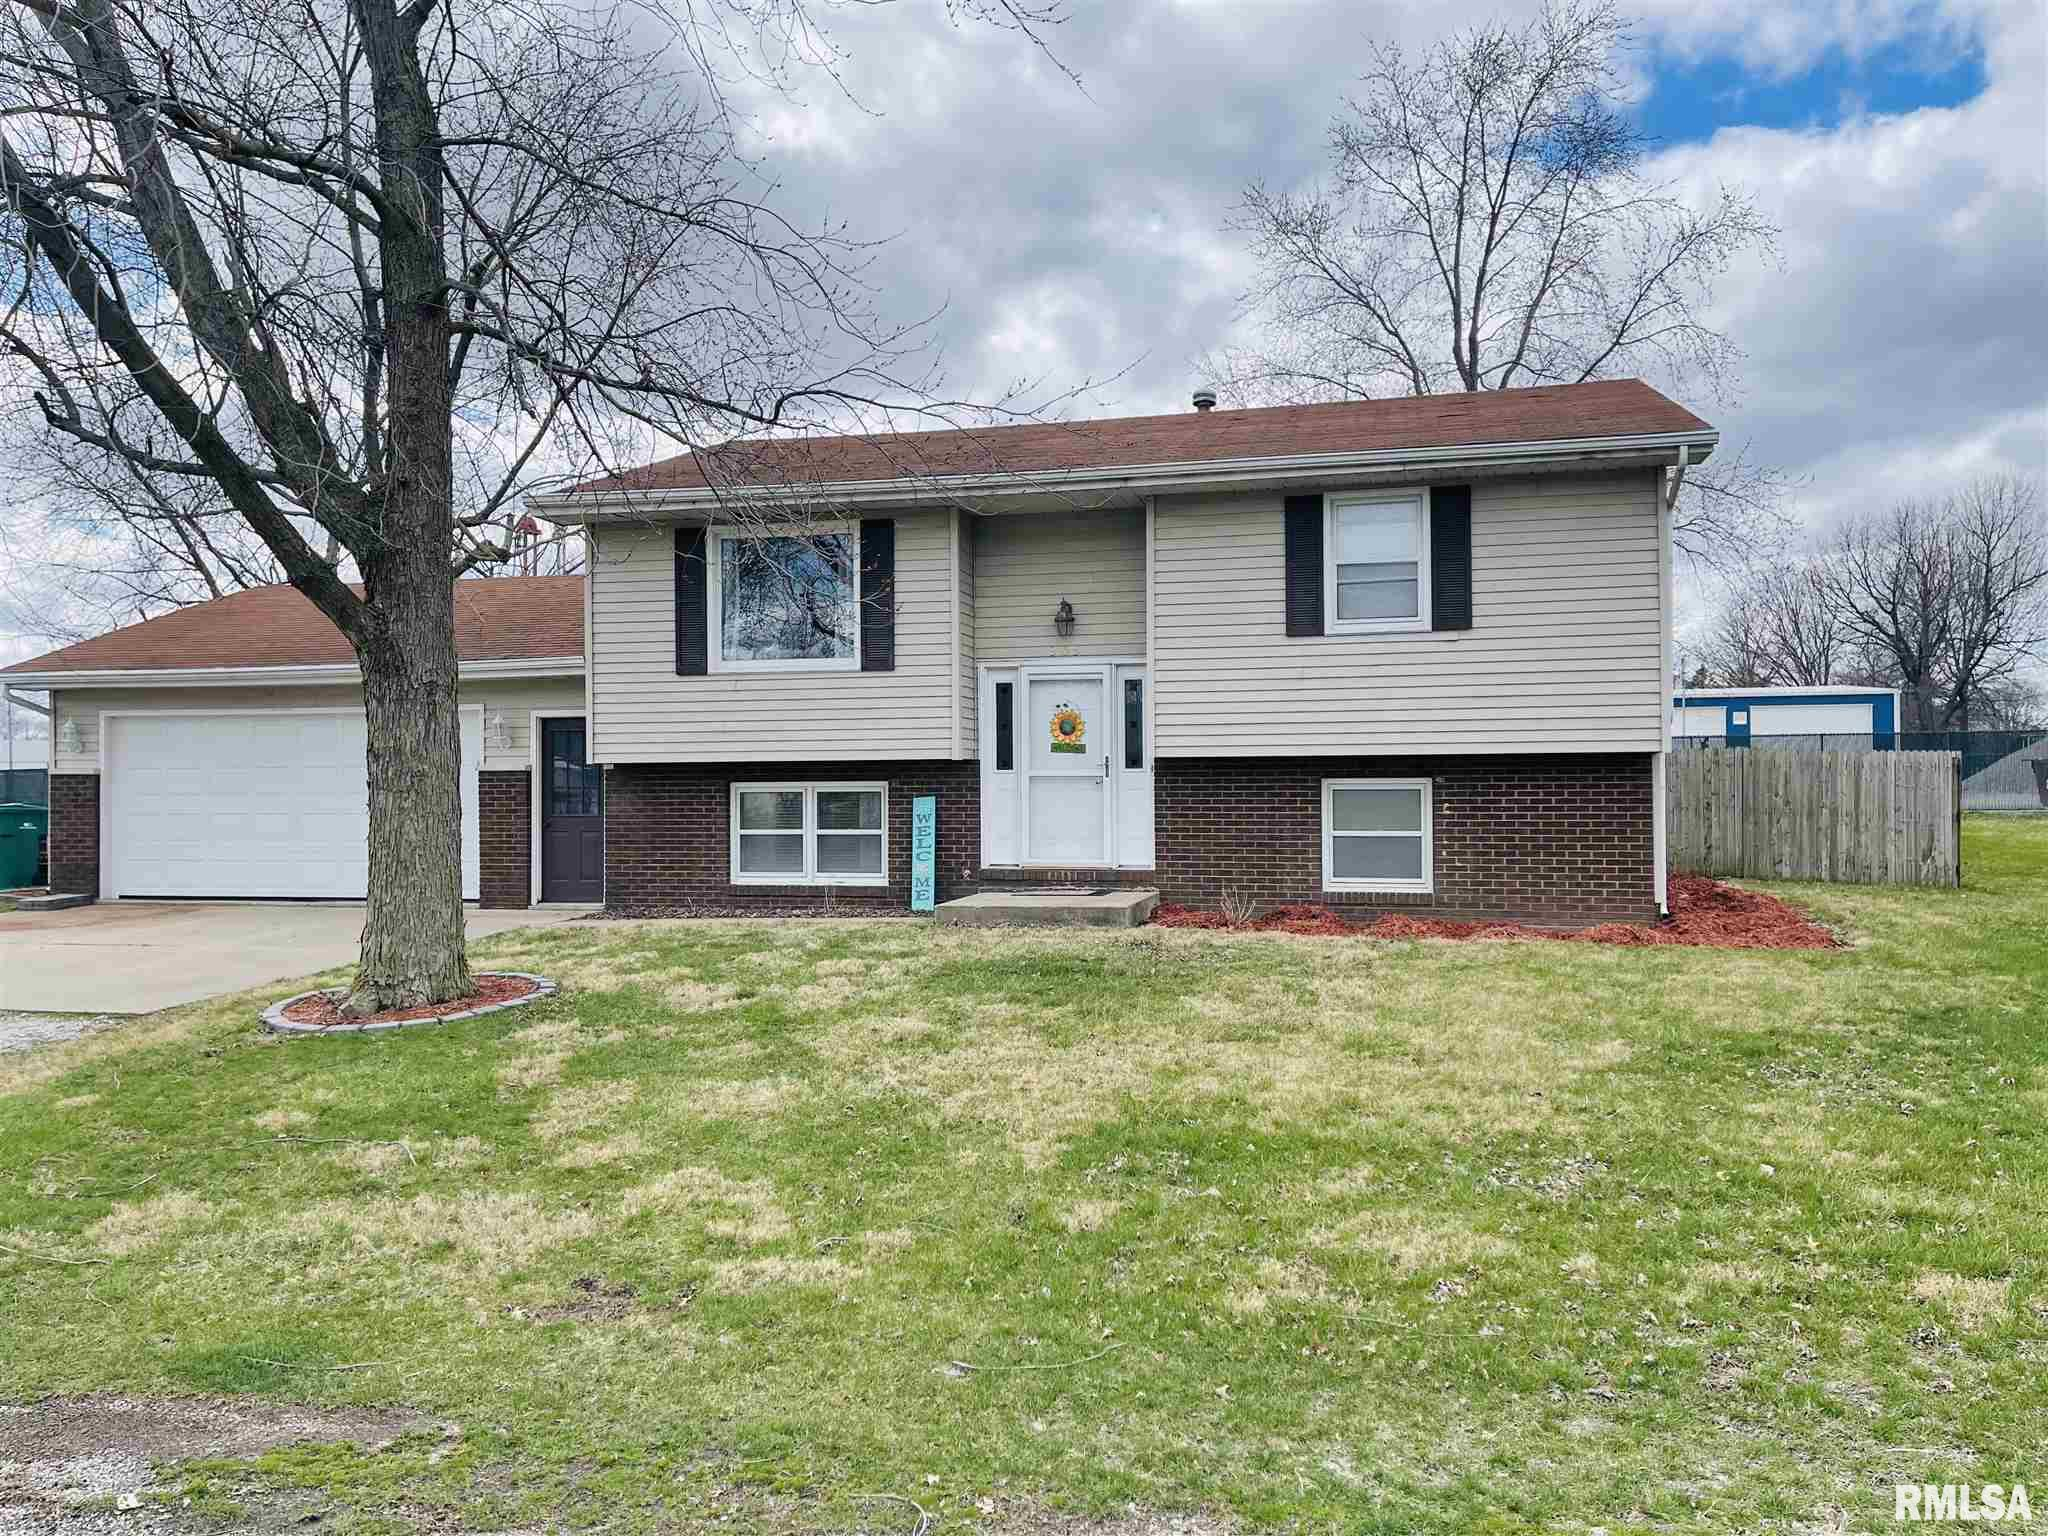 303 GRAND Property Photo - Kincaid, IL real estate listing